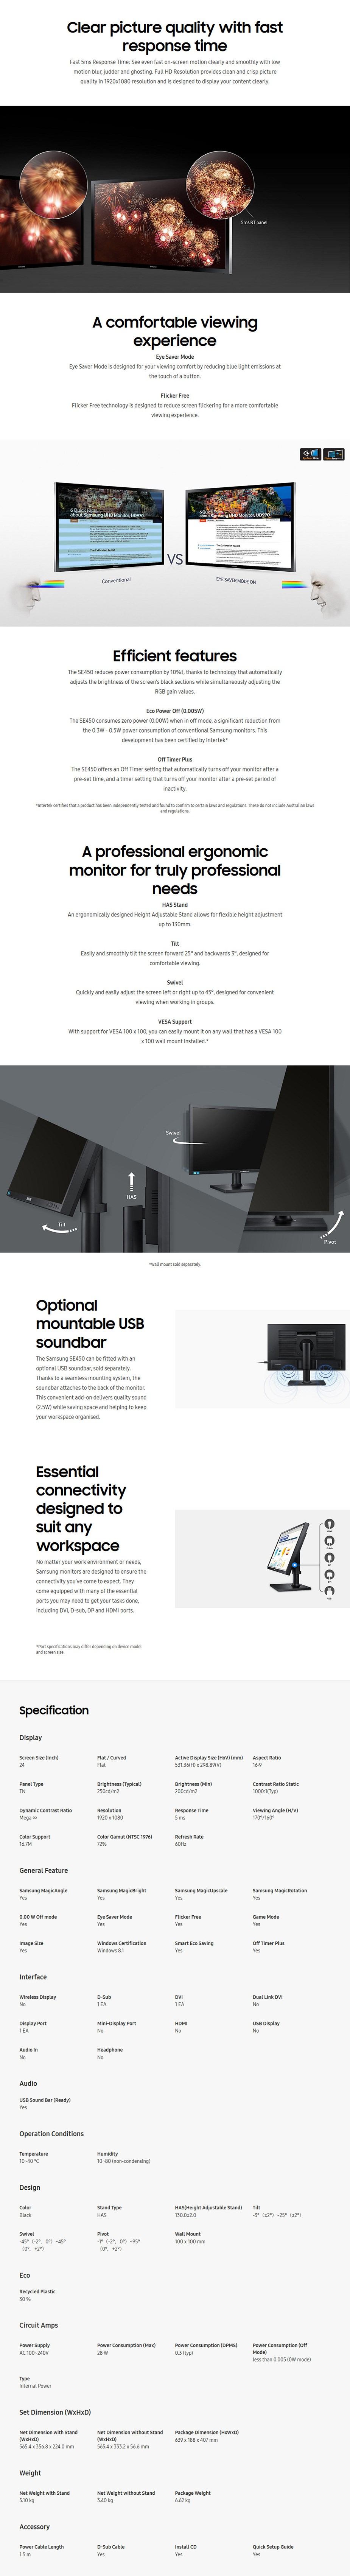 "Samsung SE450 24"" Full HD TN LED Monitor - Desktop Overview 1"